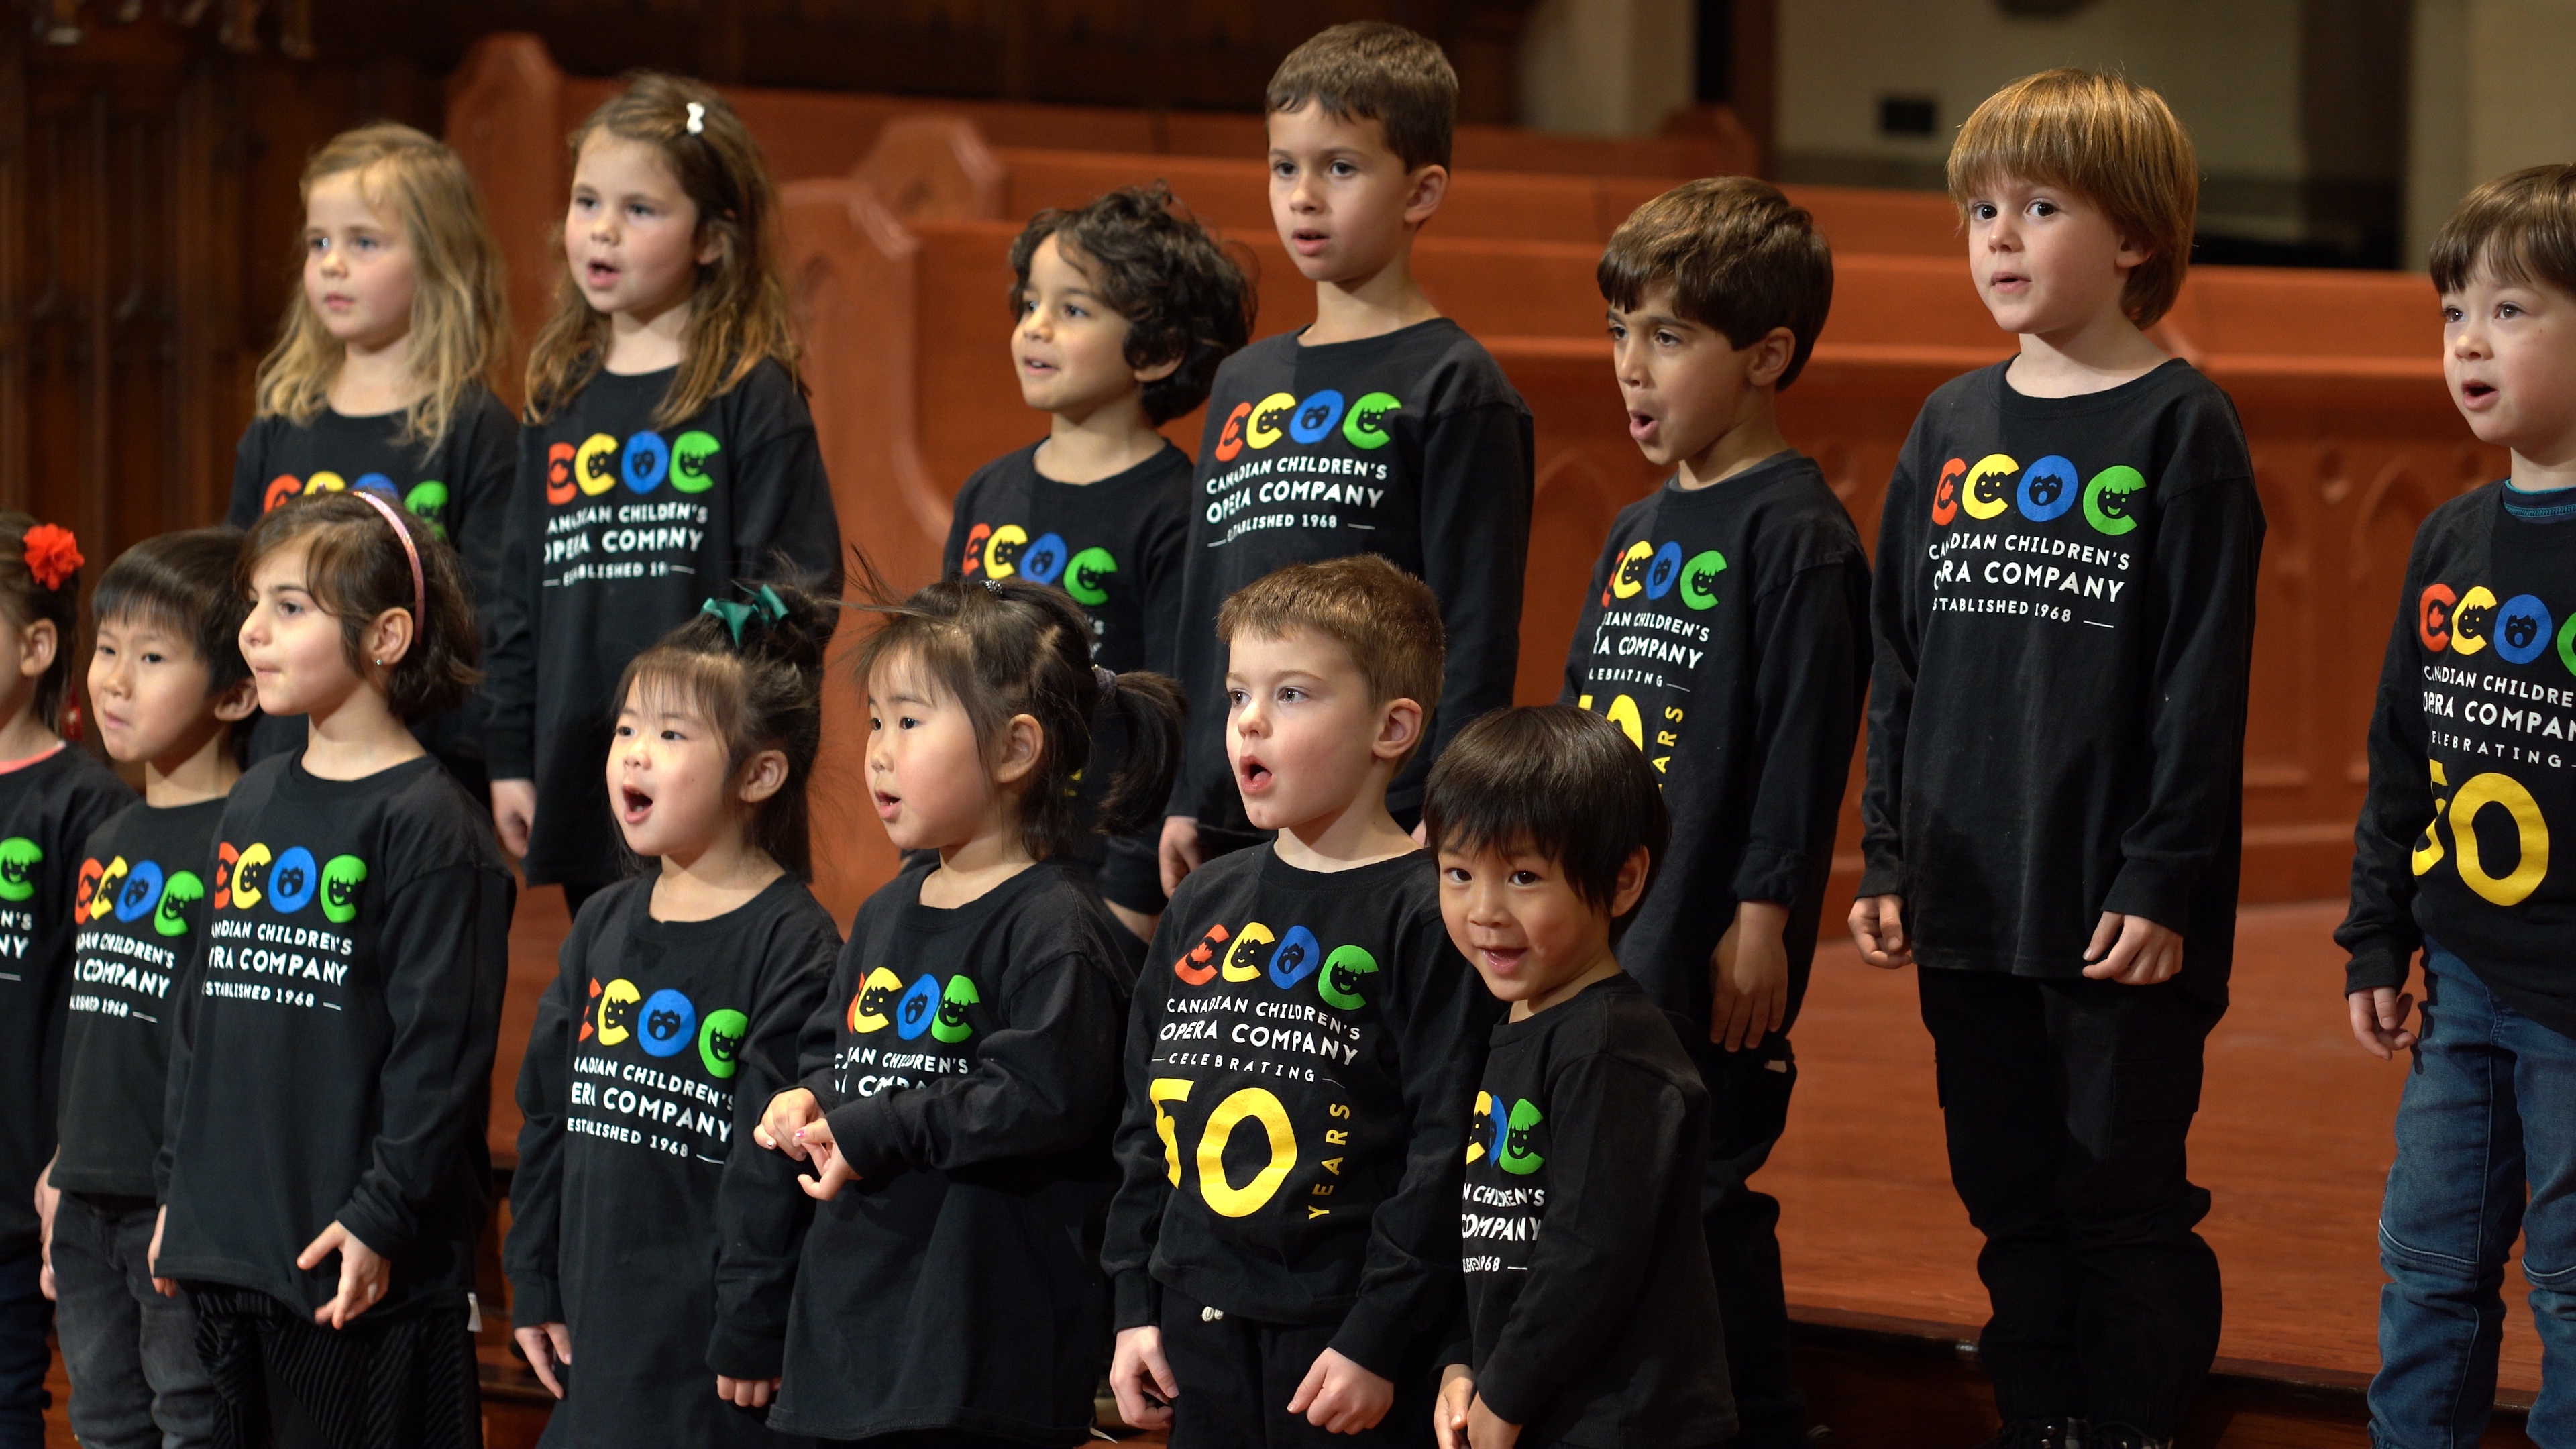 Canadian Children's Opera Company 2019/20 Auditions | Canadian